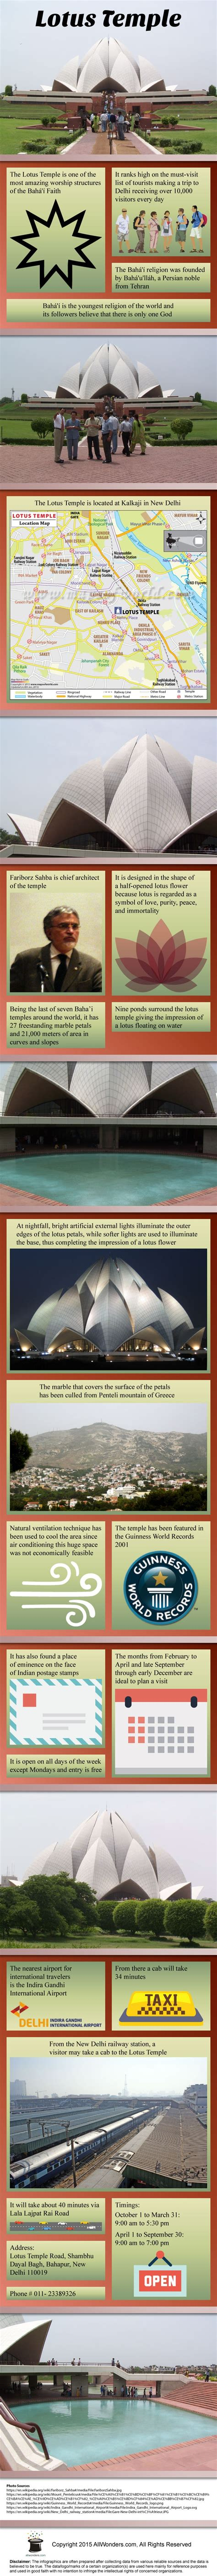 Lotus Temple Facts Lotus Temple Infographic Travel Infographic On Lotus Temple